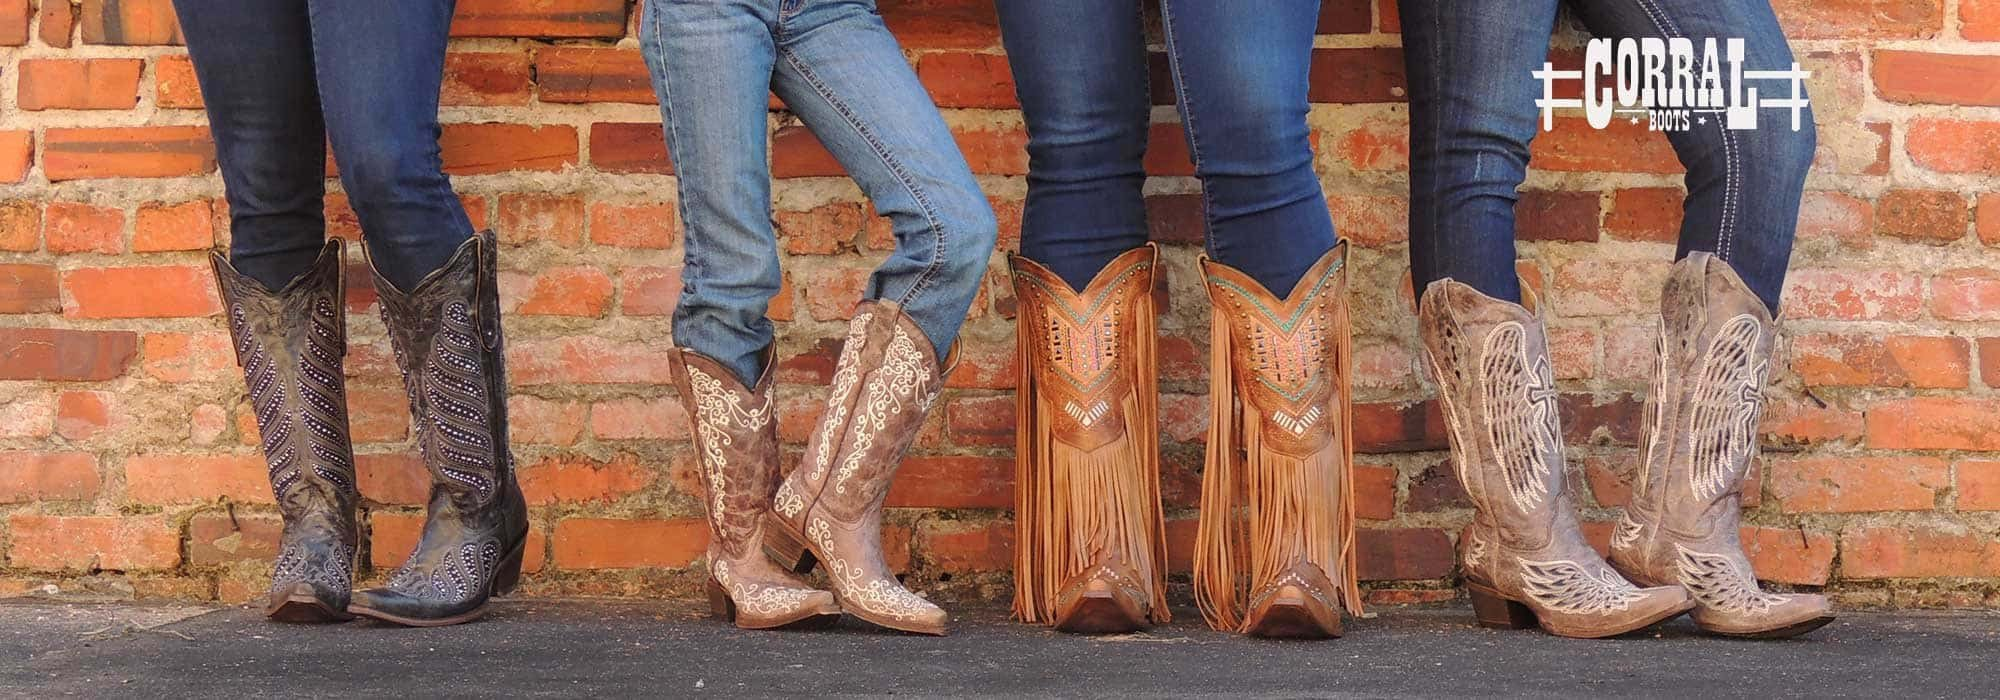 womens boot stores near me